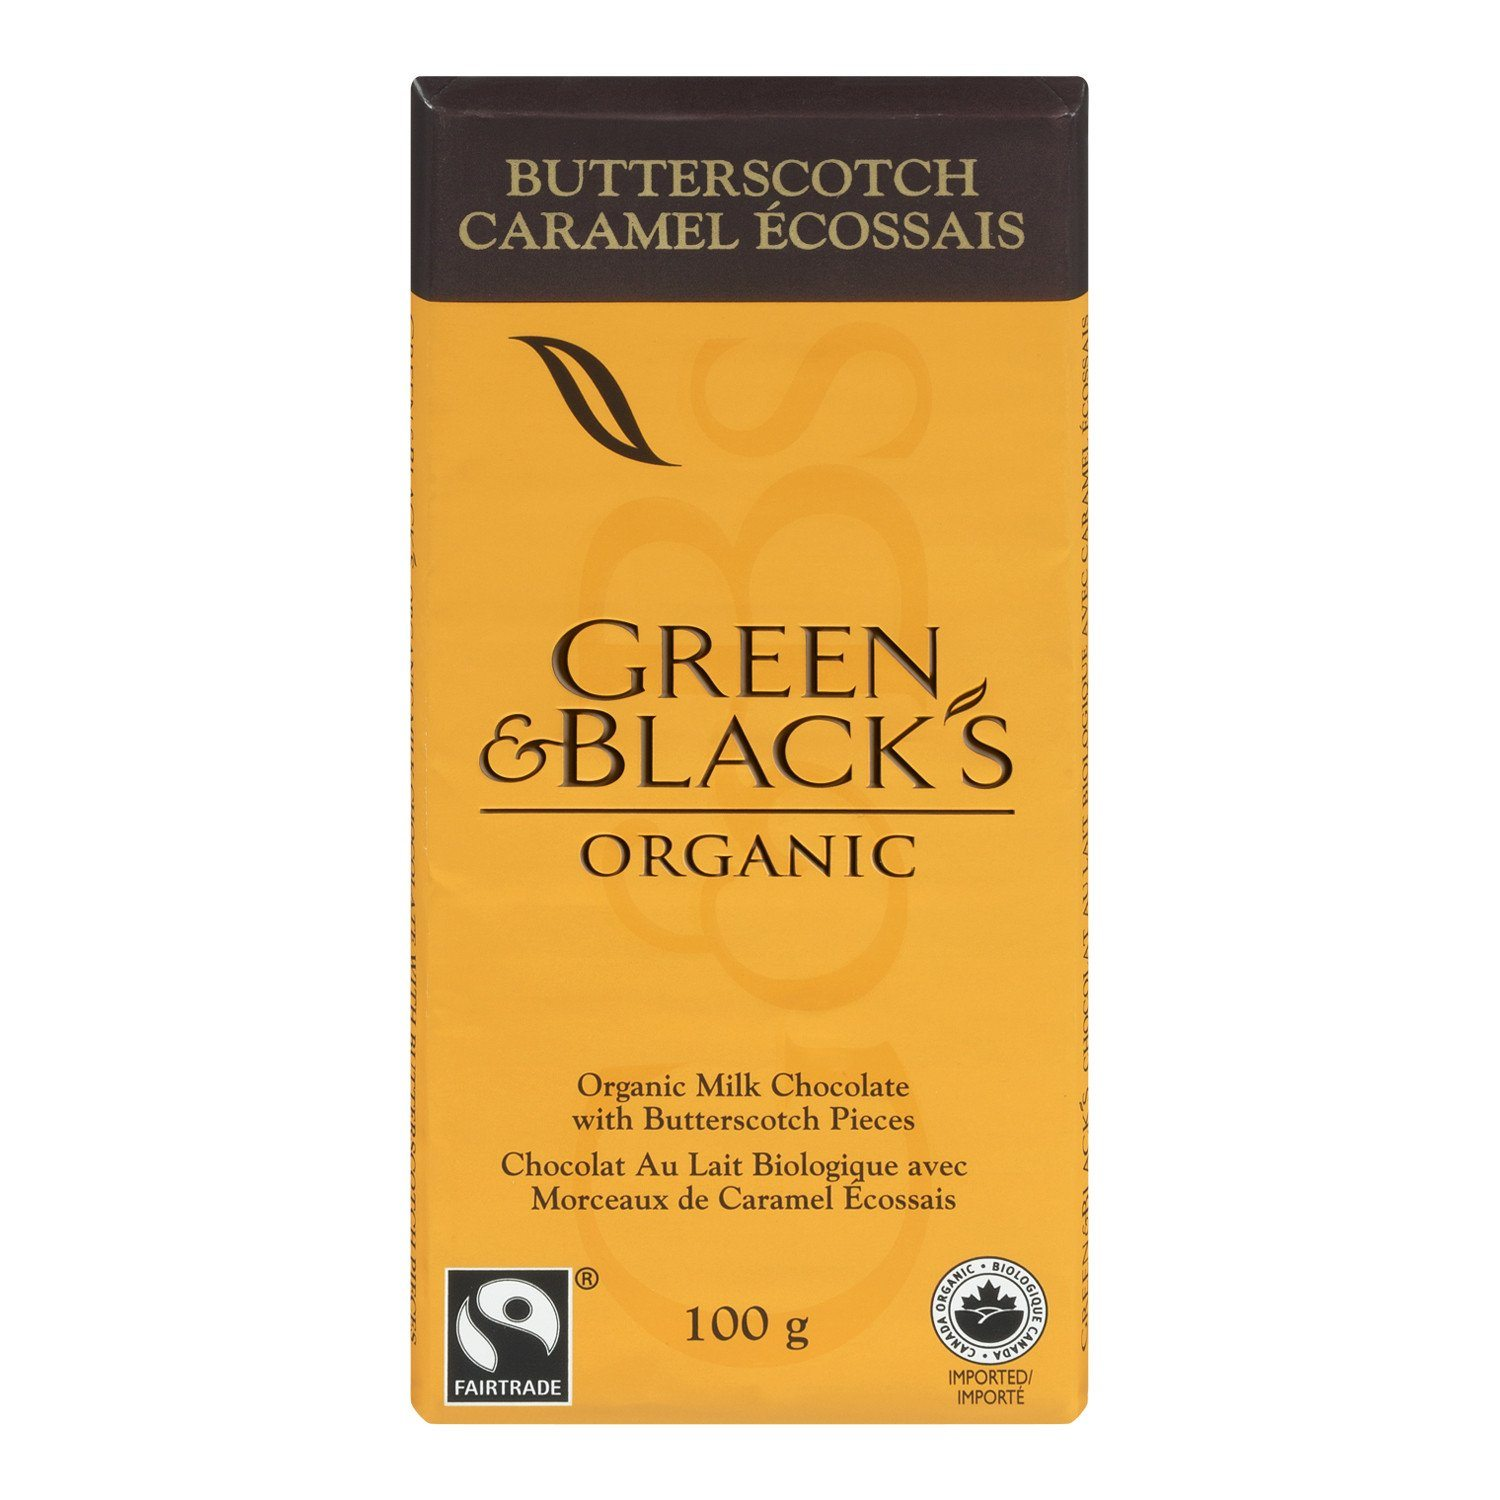 Food & Drink - Green & Black's Organic - Organic Butterscotch Milk Chocolate, 100g